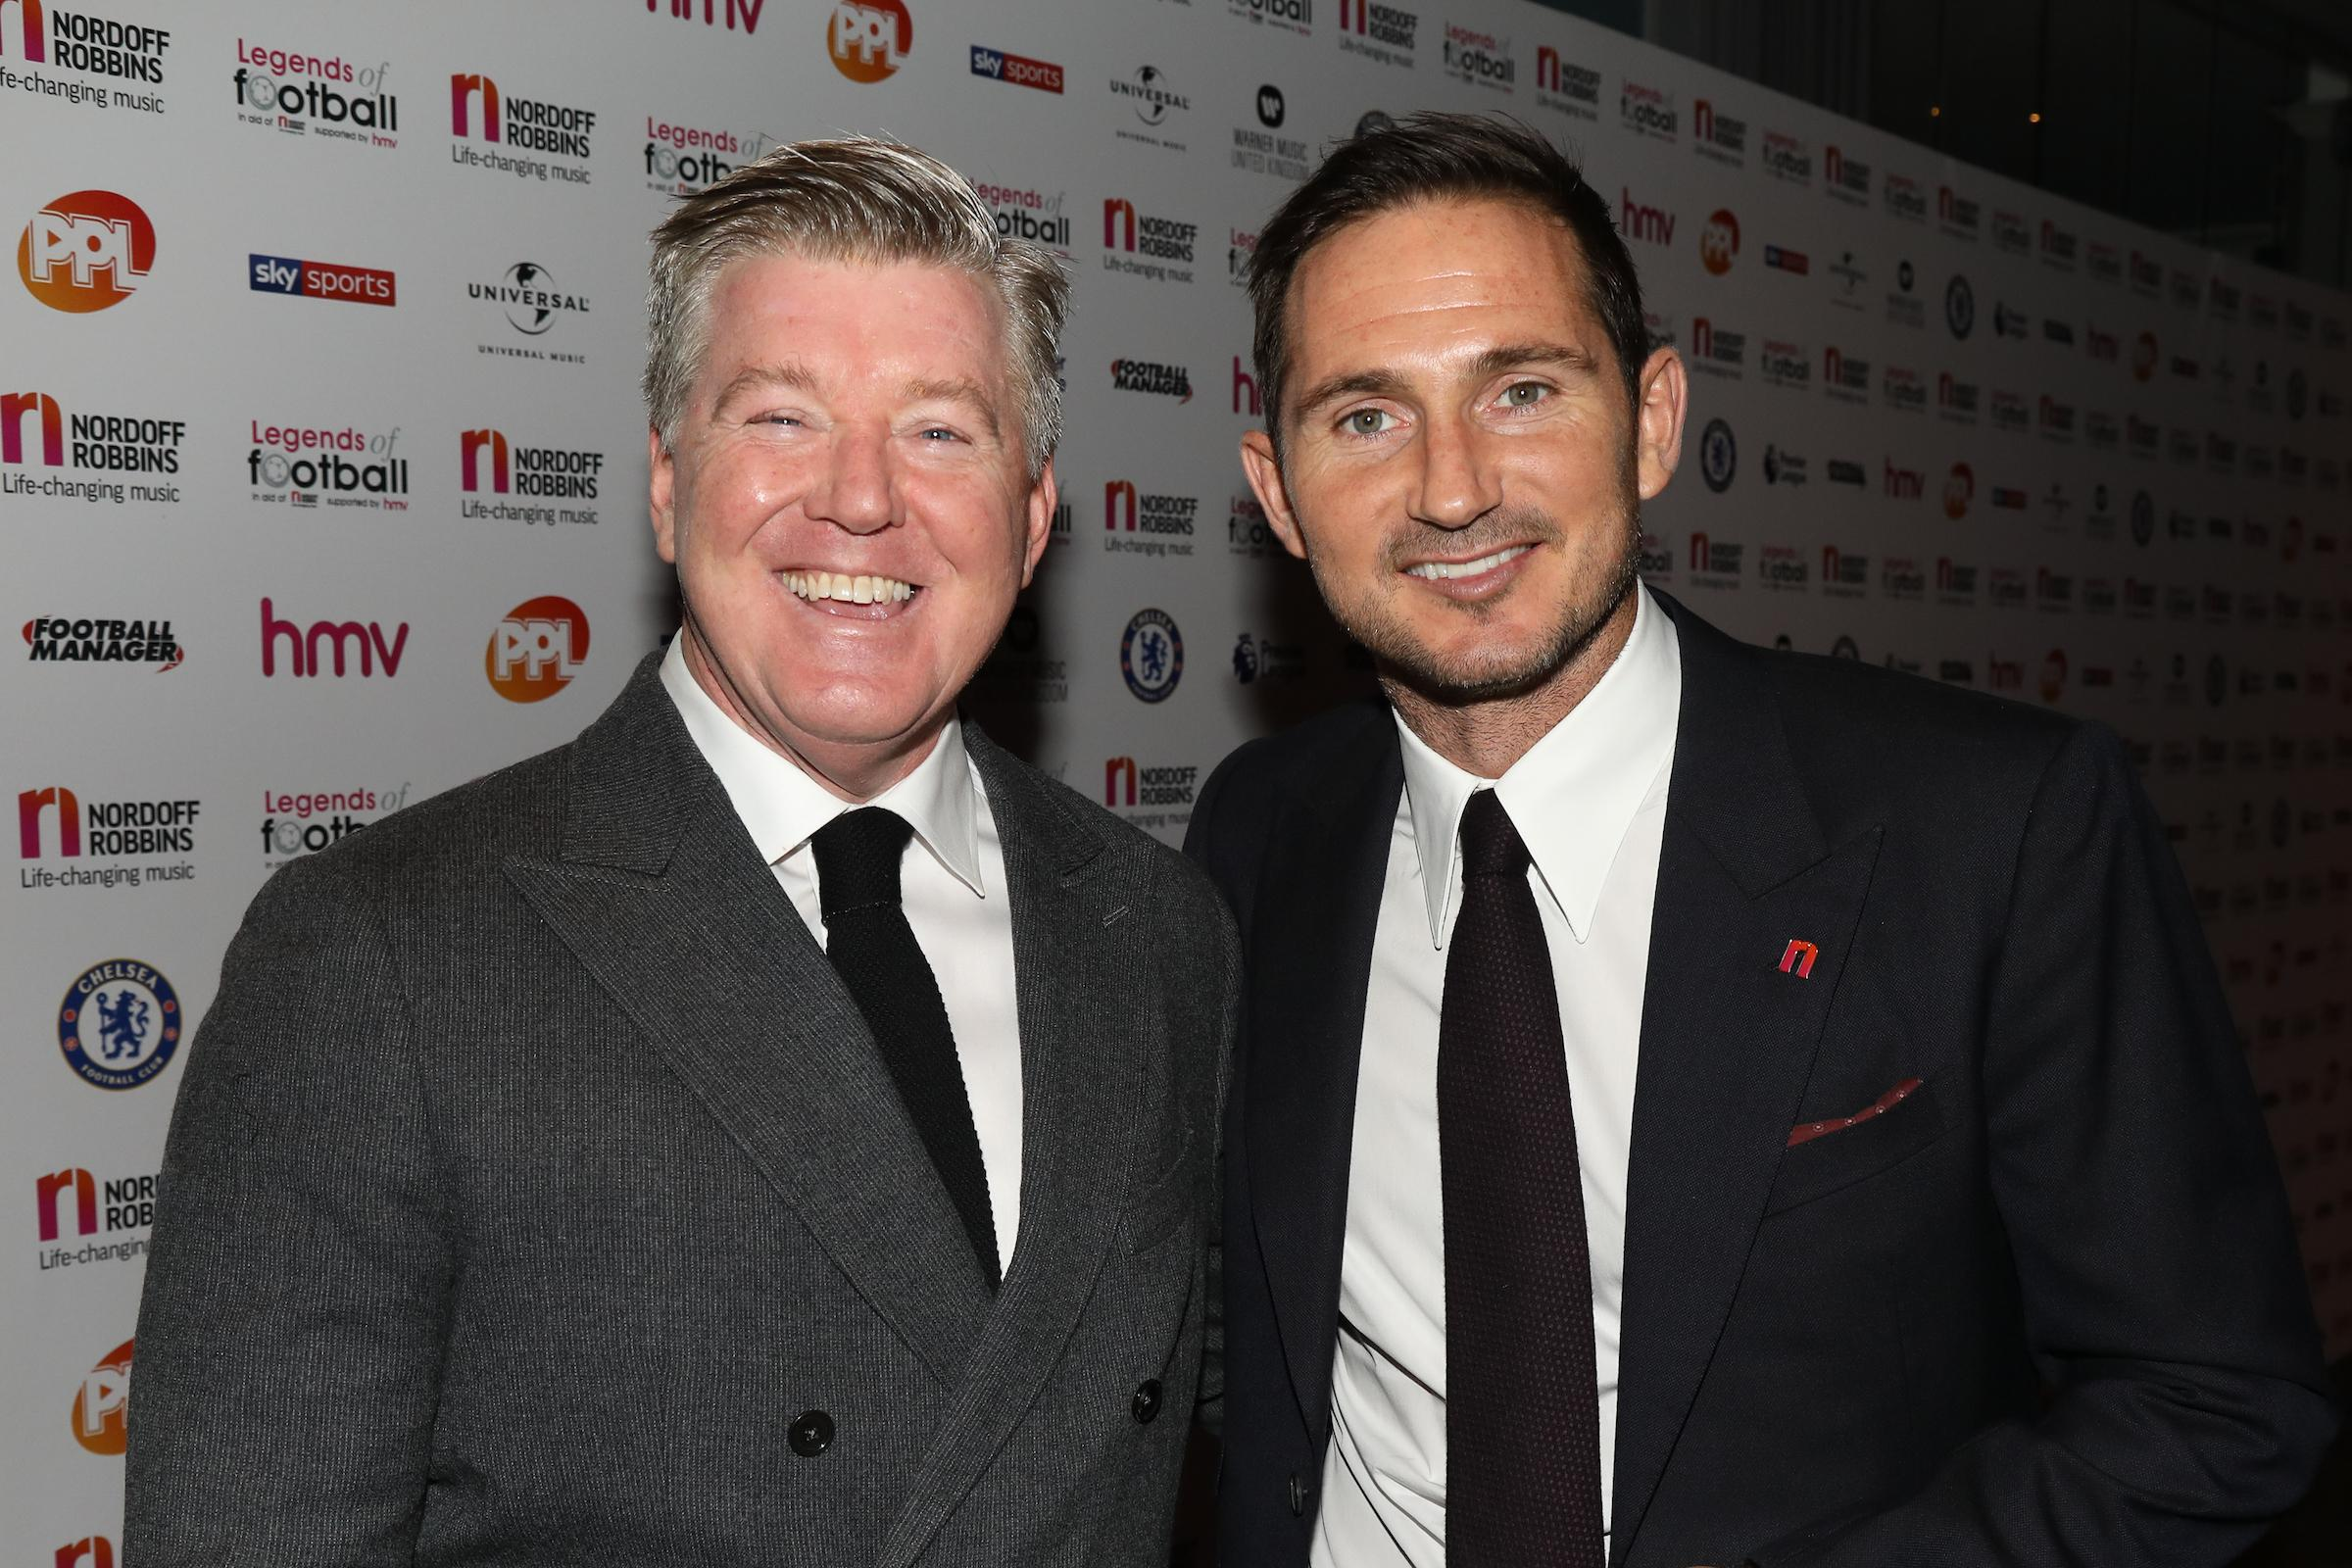 Sky Sports' Geoff Shreeves was also at the event at the Grosvenor House Hotel in London